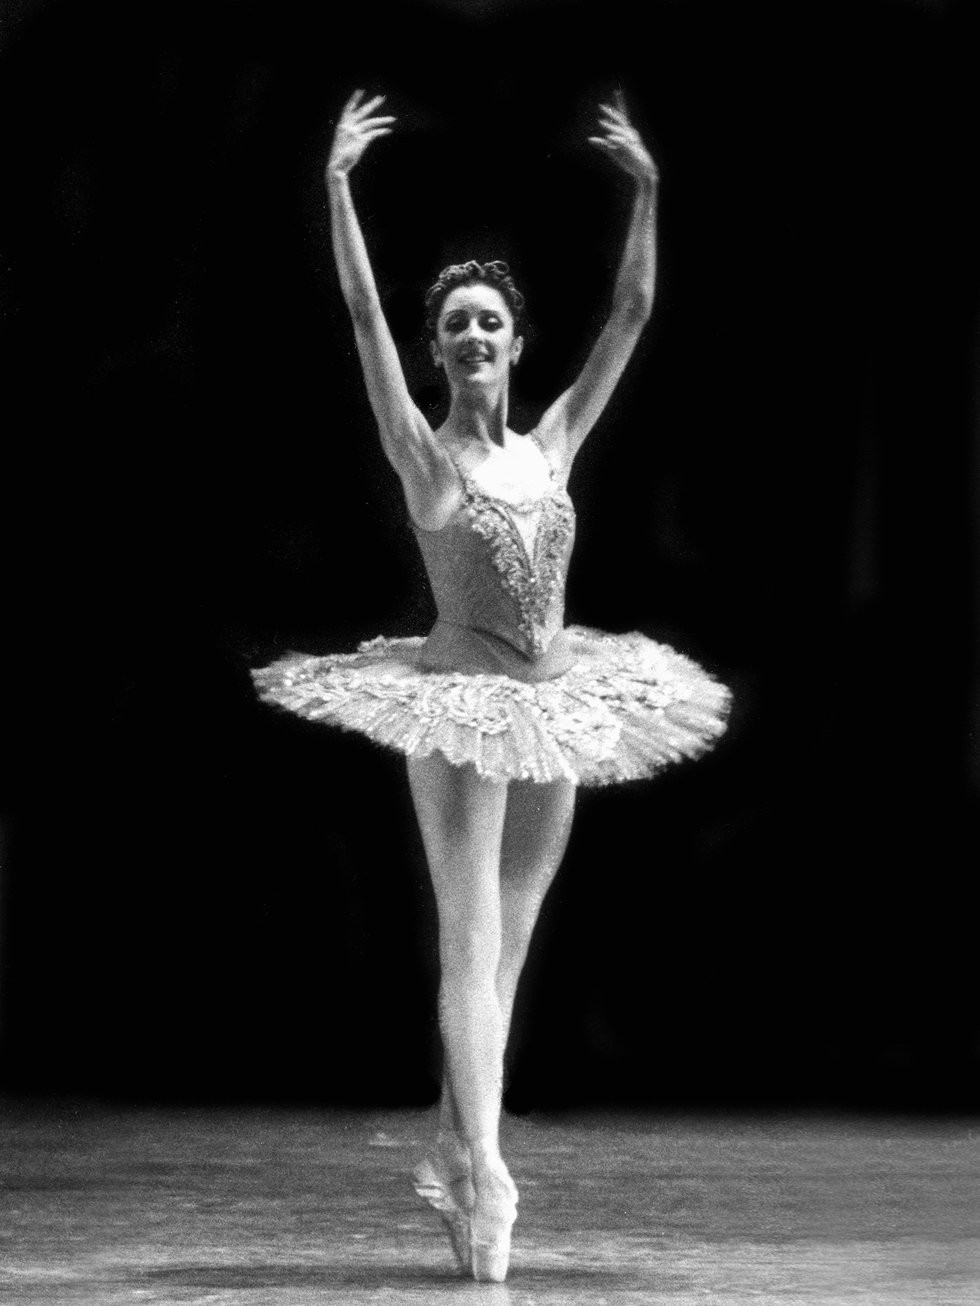 Carla Stallings Lippert in fifth position on pointe in a tutu